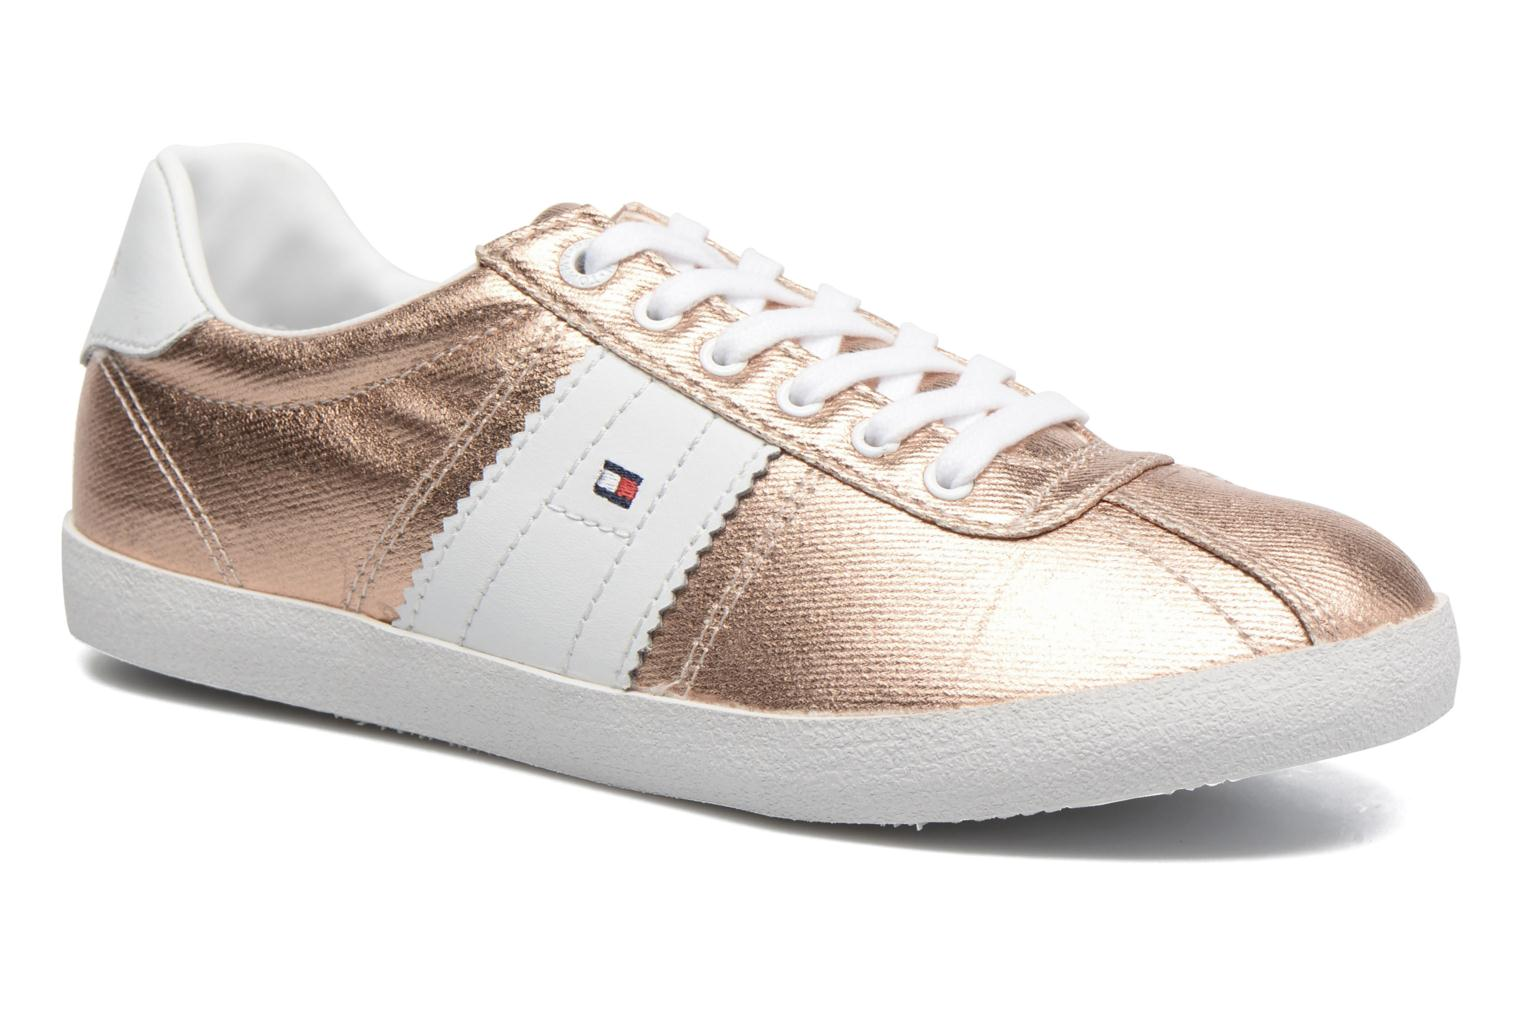 sneakers-lizzie-d1-by-tommy-hilfiger